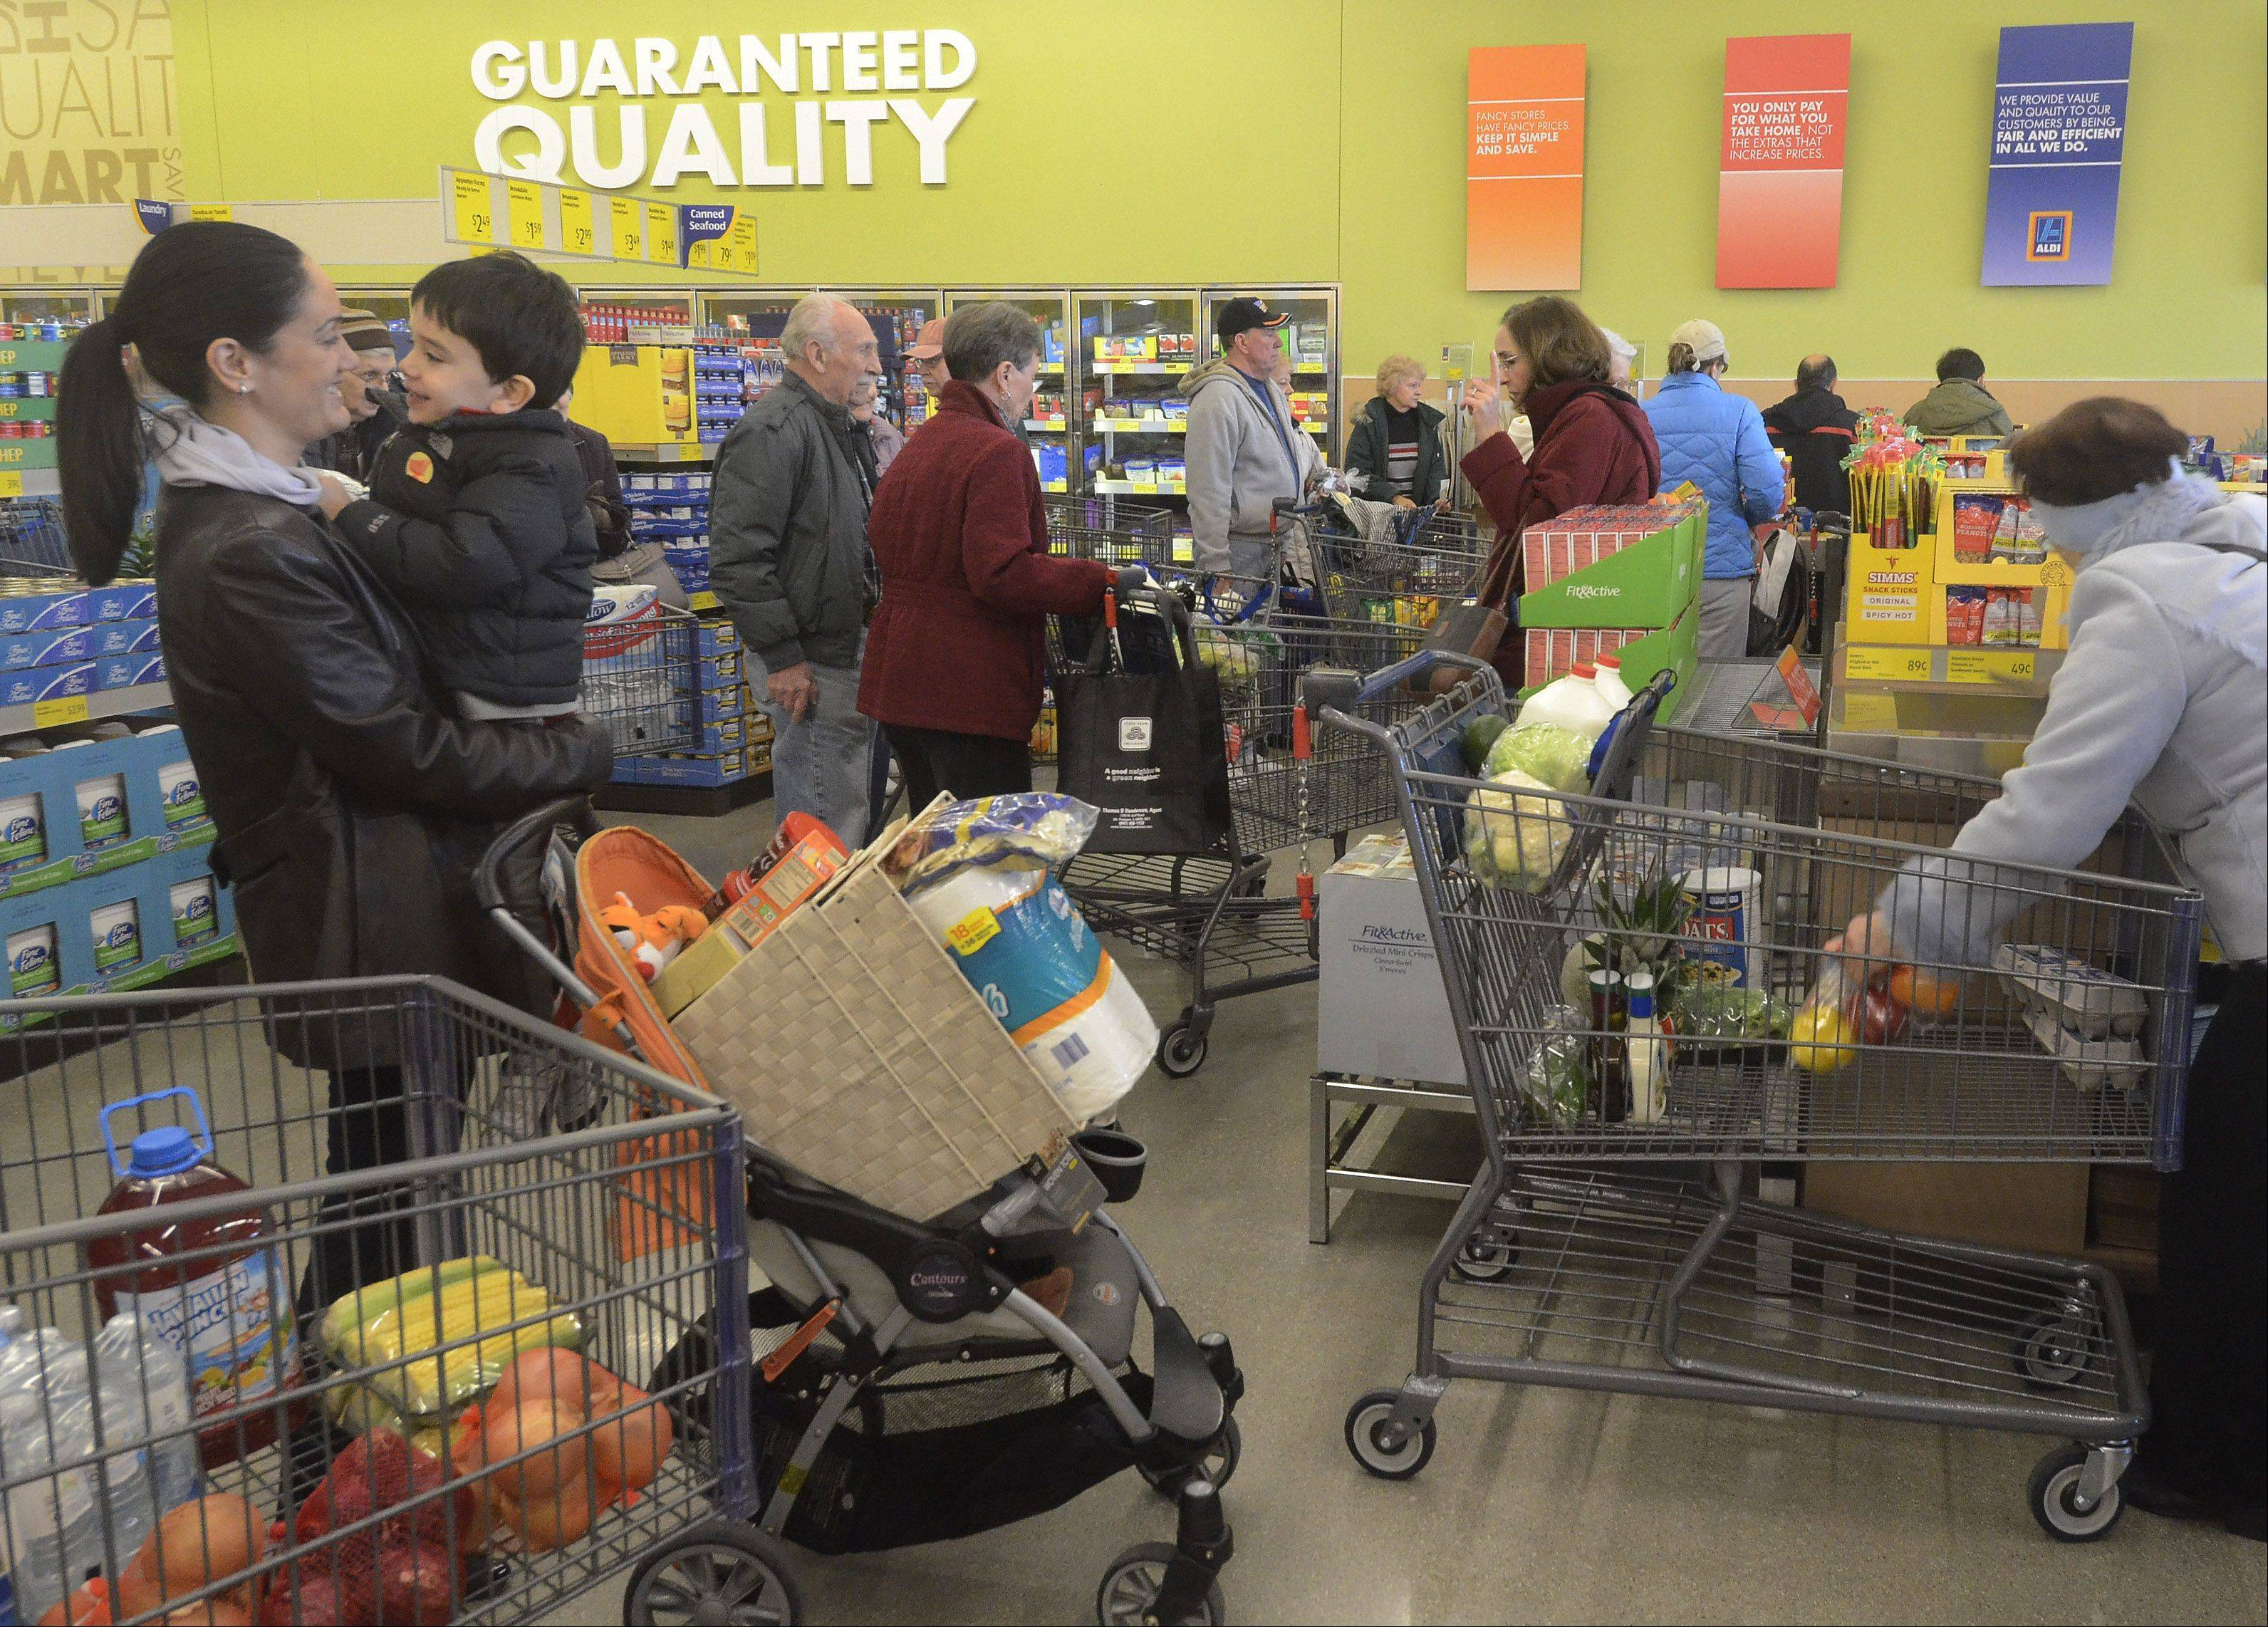 Irene and Panos Makropoulos wait in line to check out Thursday at the new Aldi grocery store in Mount Prospect.